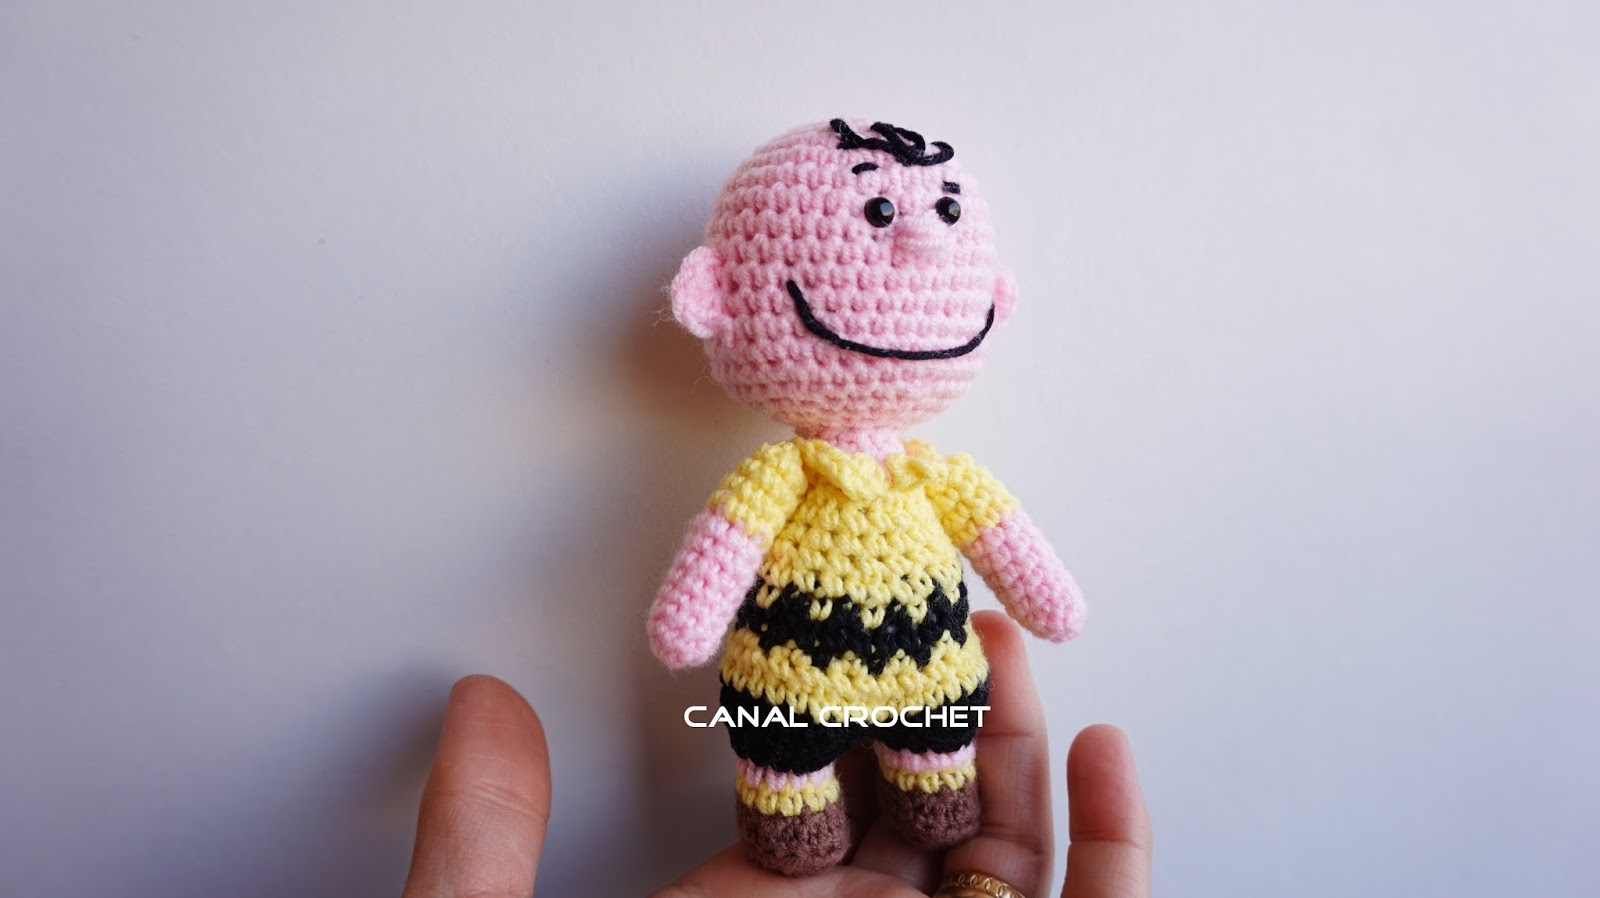 Amigurumi Patterns Snoopy : Canal crochet: charlie brown y woodstock amigurumi tutorial